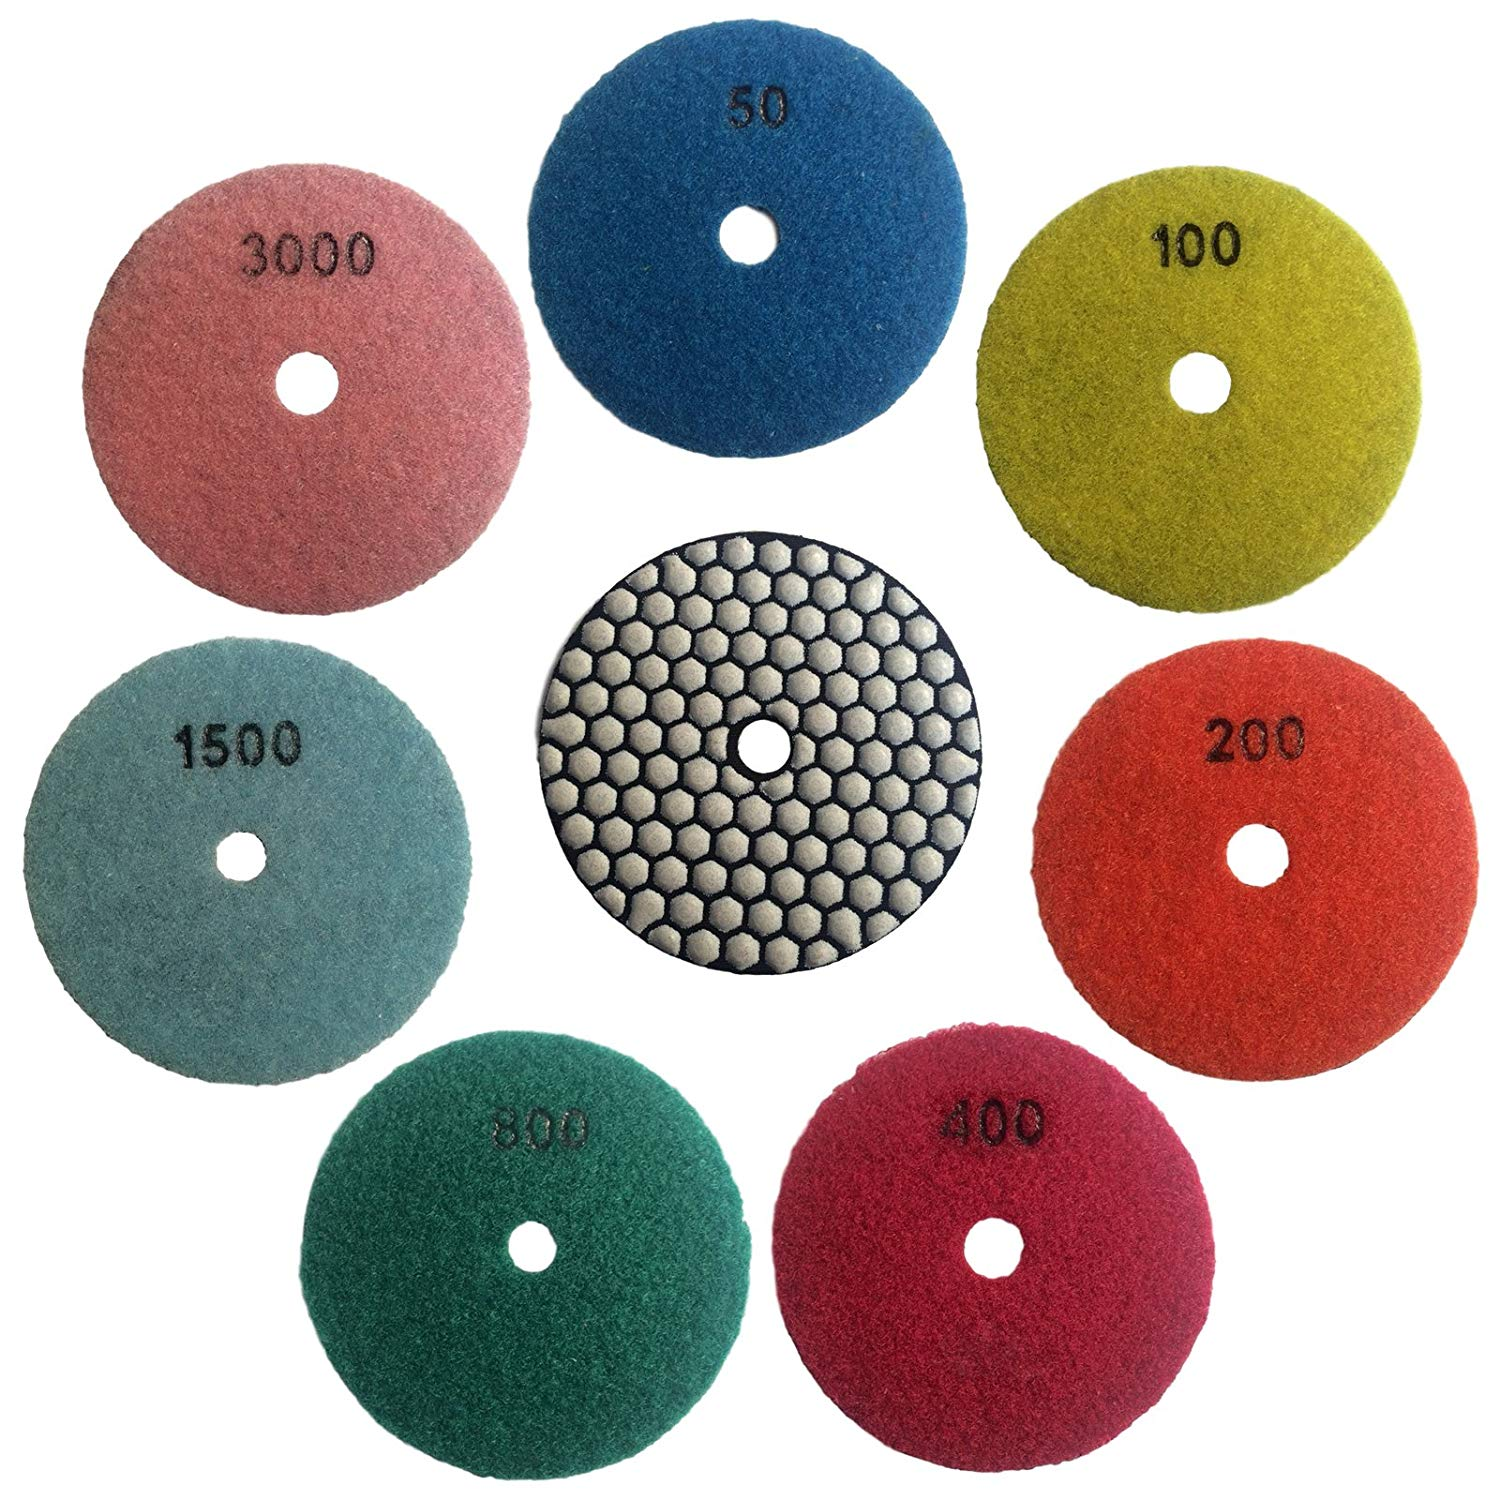 Konfor 5 Inch Dry Diamond Polishing Pads For Granite Marble Concrete Travertine Polish 7 Pcs Set